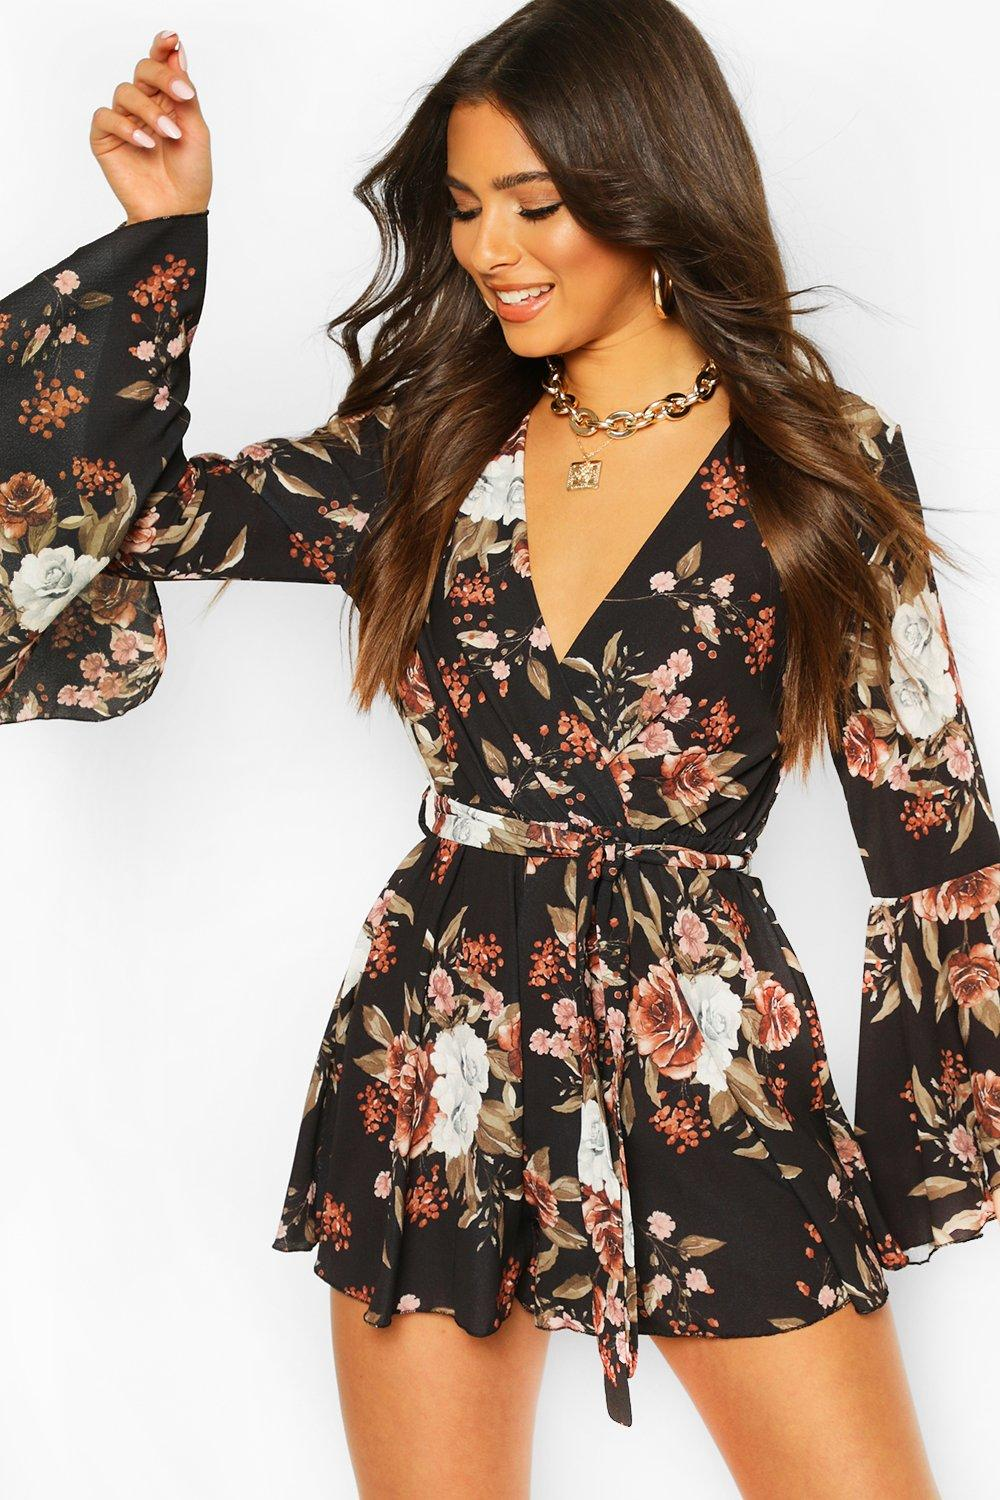 Jumpsuits & Playsuits Floral Flared Sleeve Tie Waist Playsuit